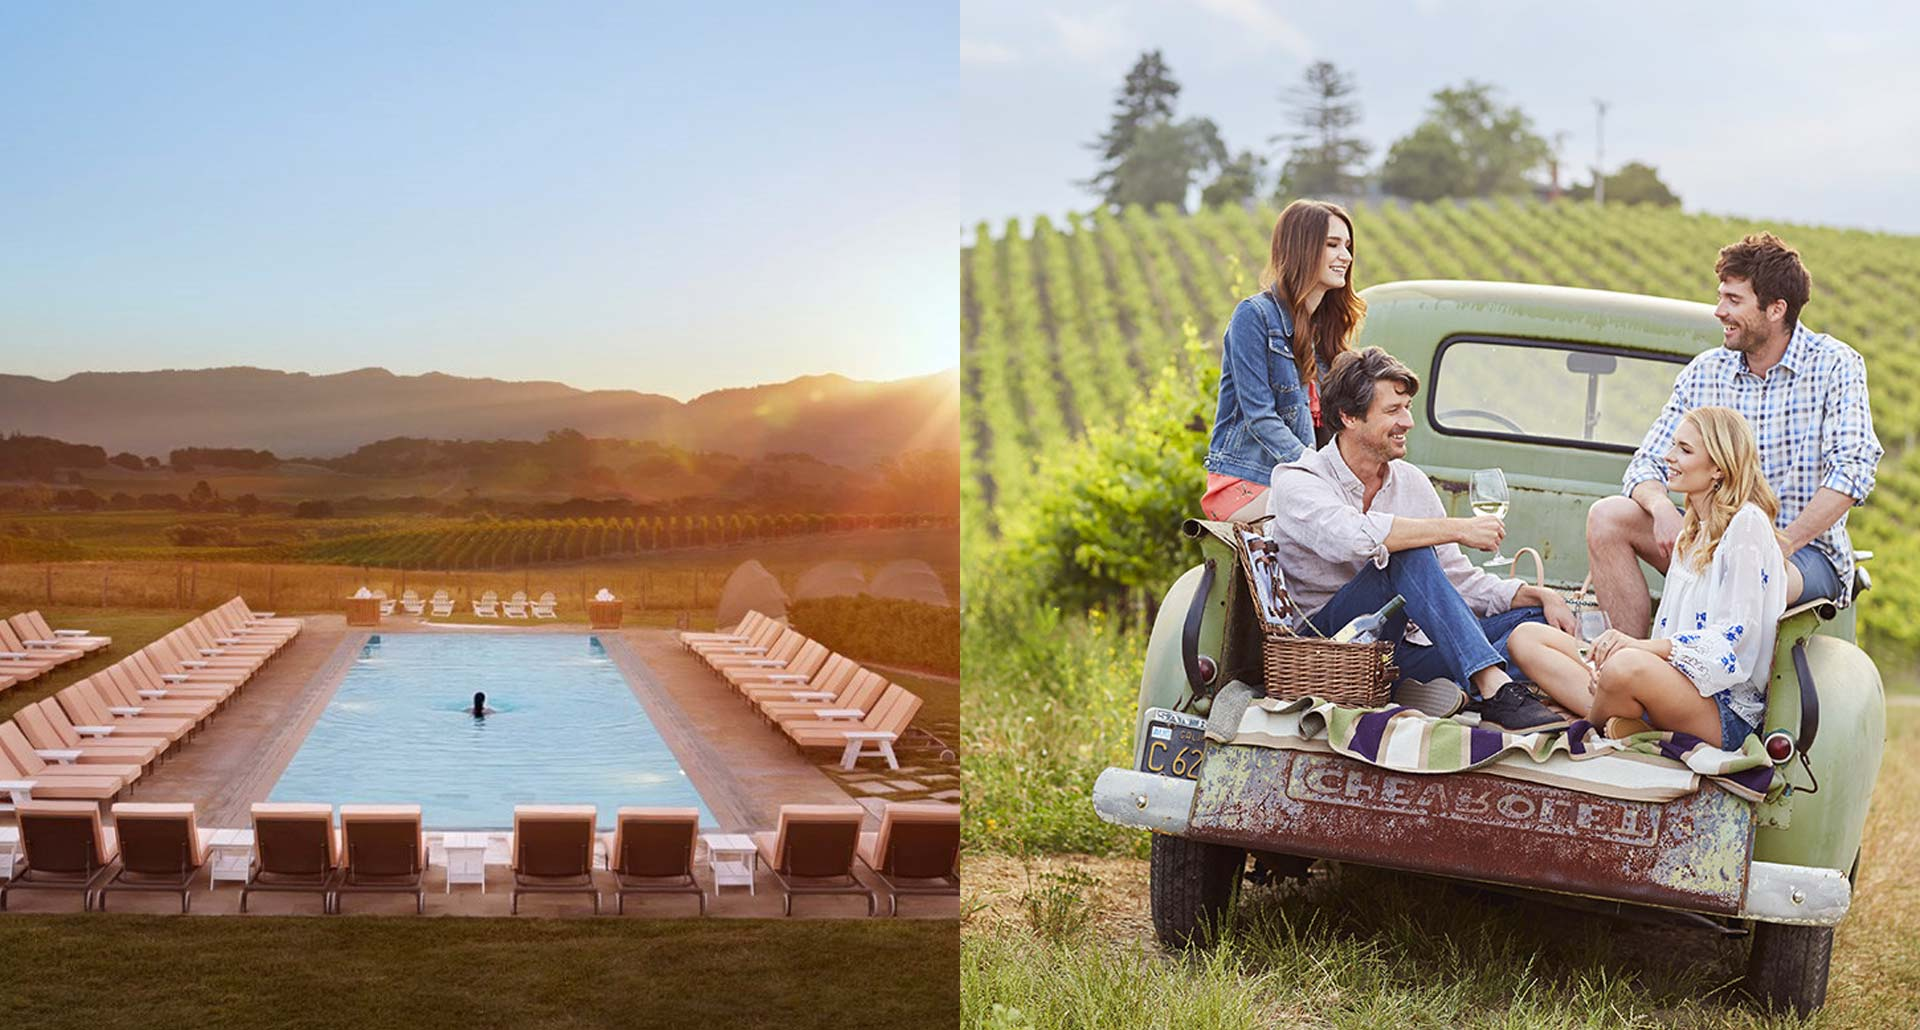 Carneros Resort and Spa - boutique hotel resort in Napa, California